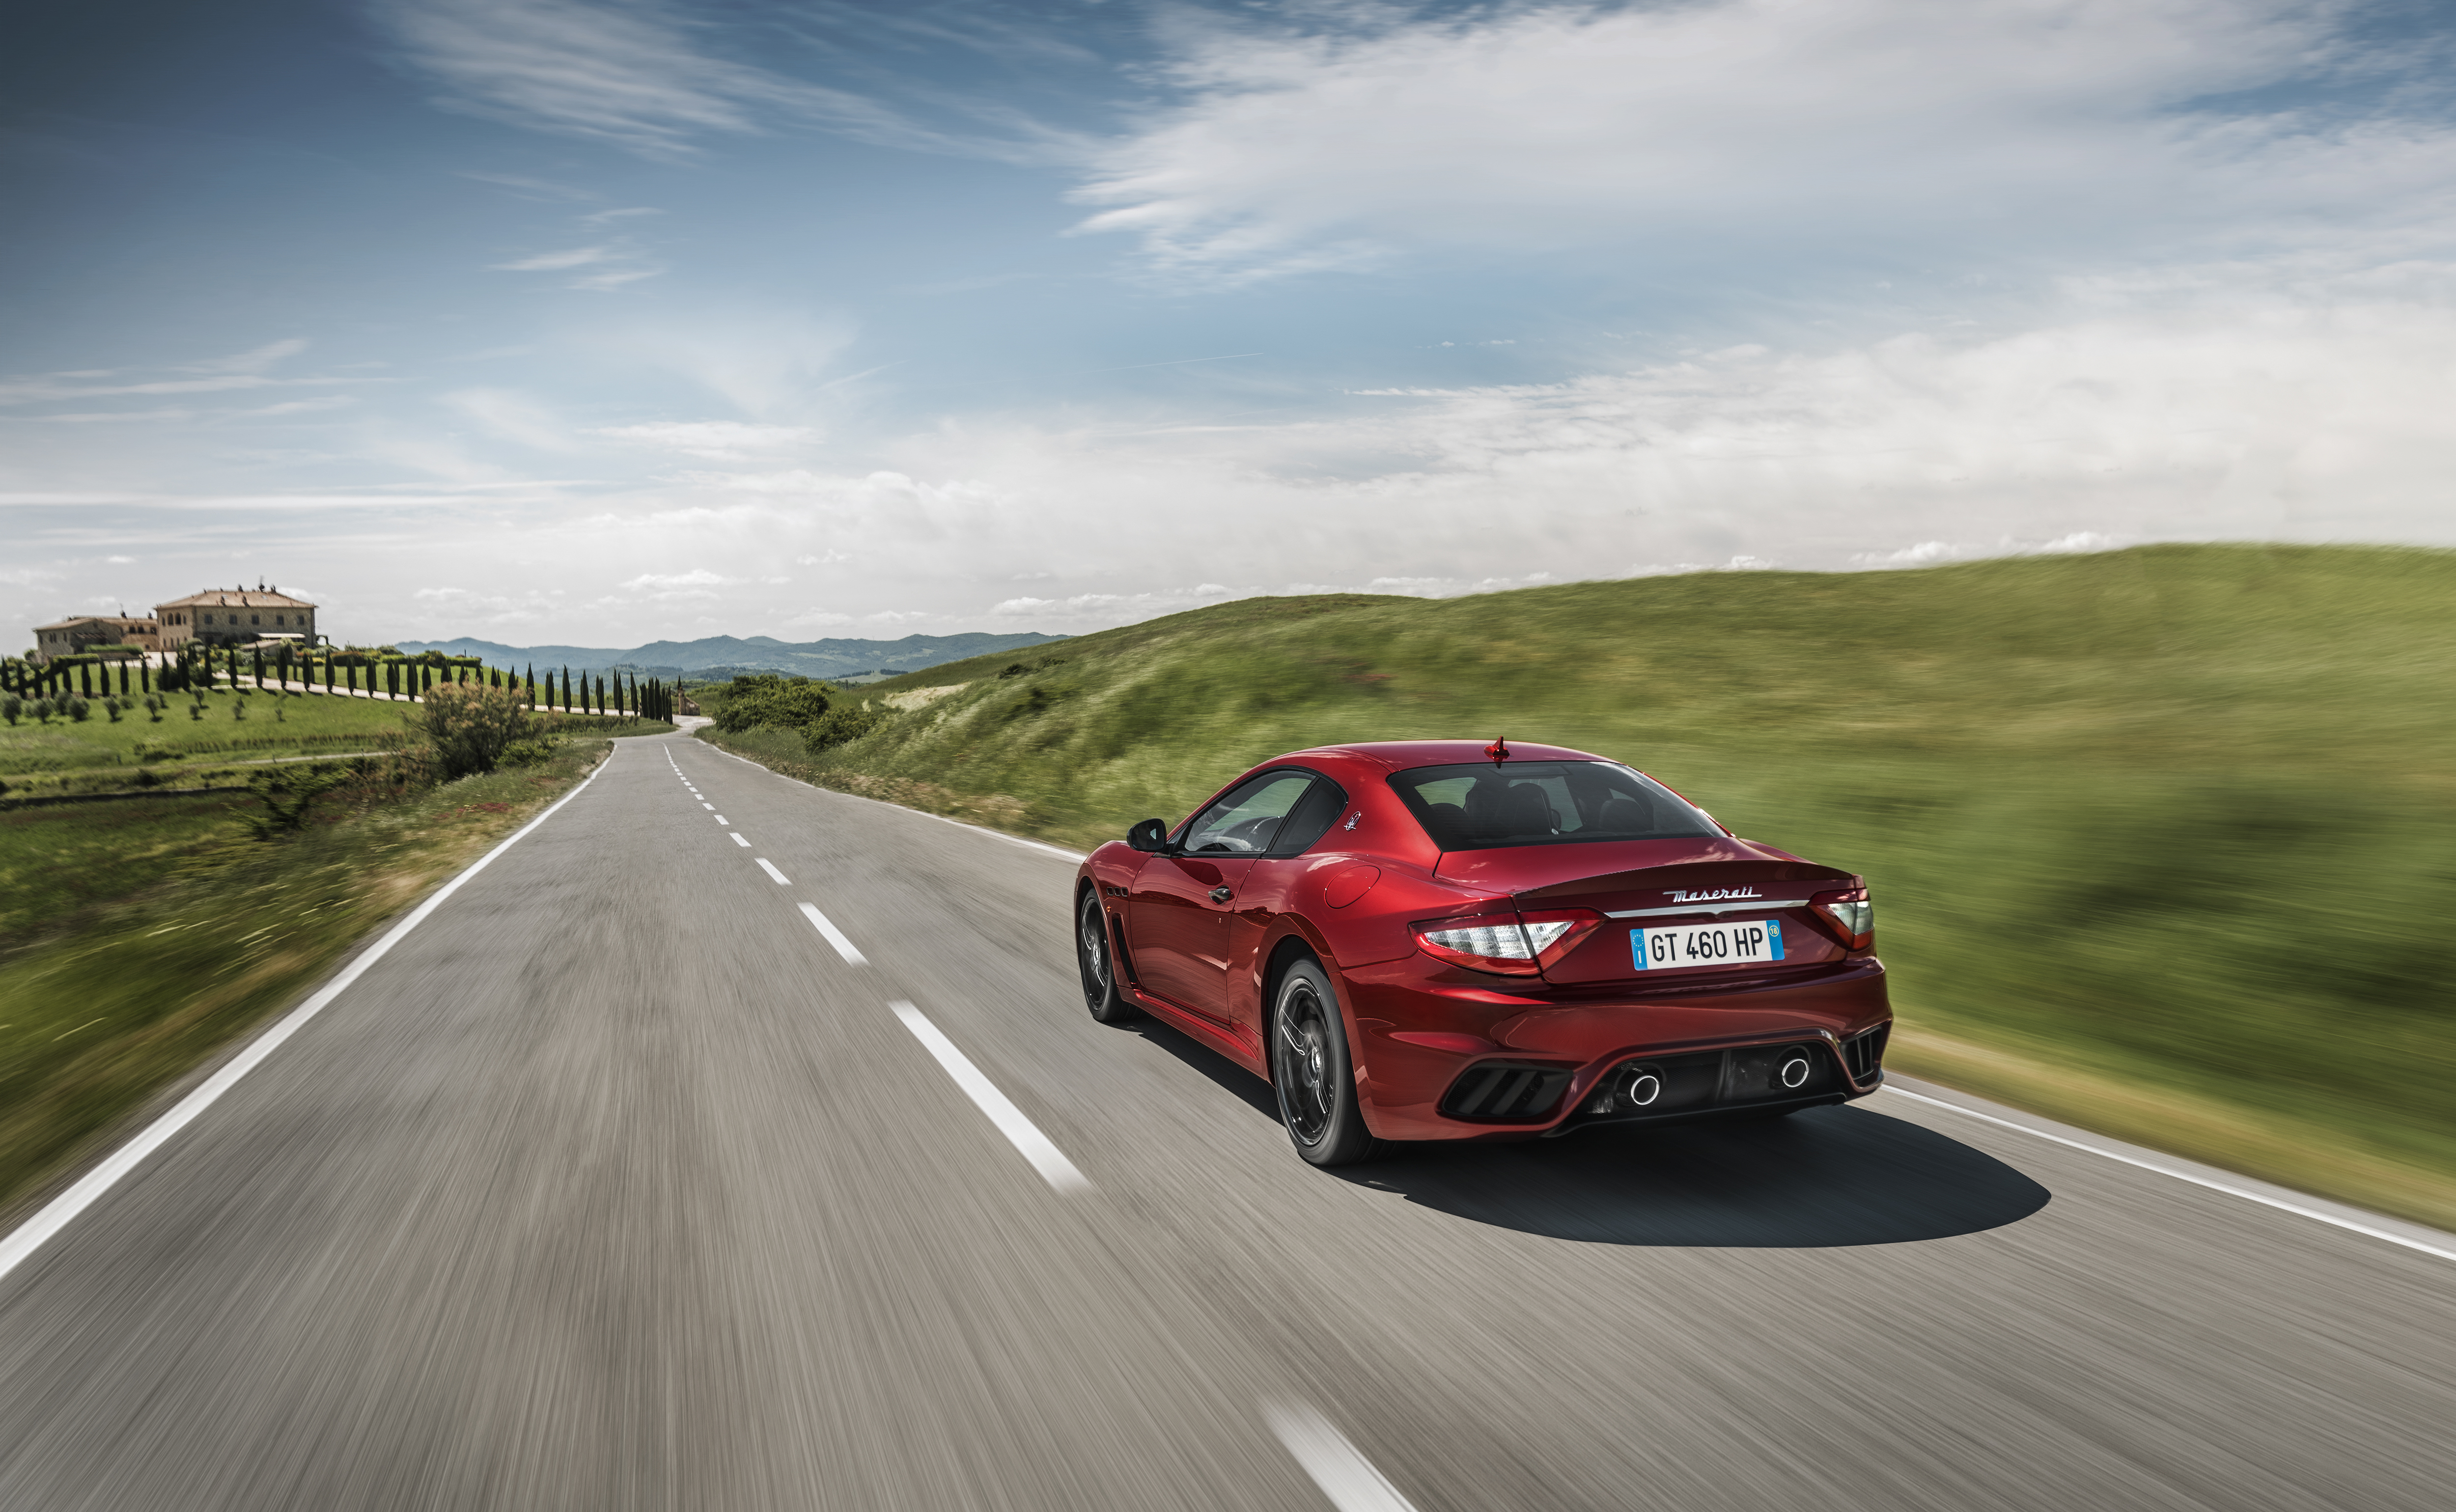 Naza Italia Introduces New Maserati Granturismo In